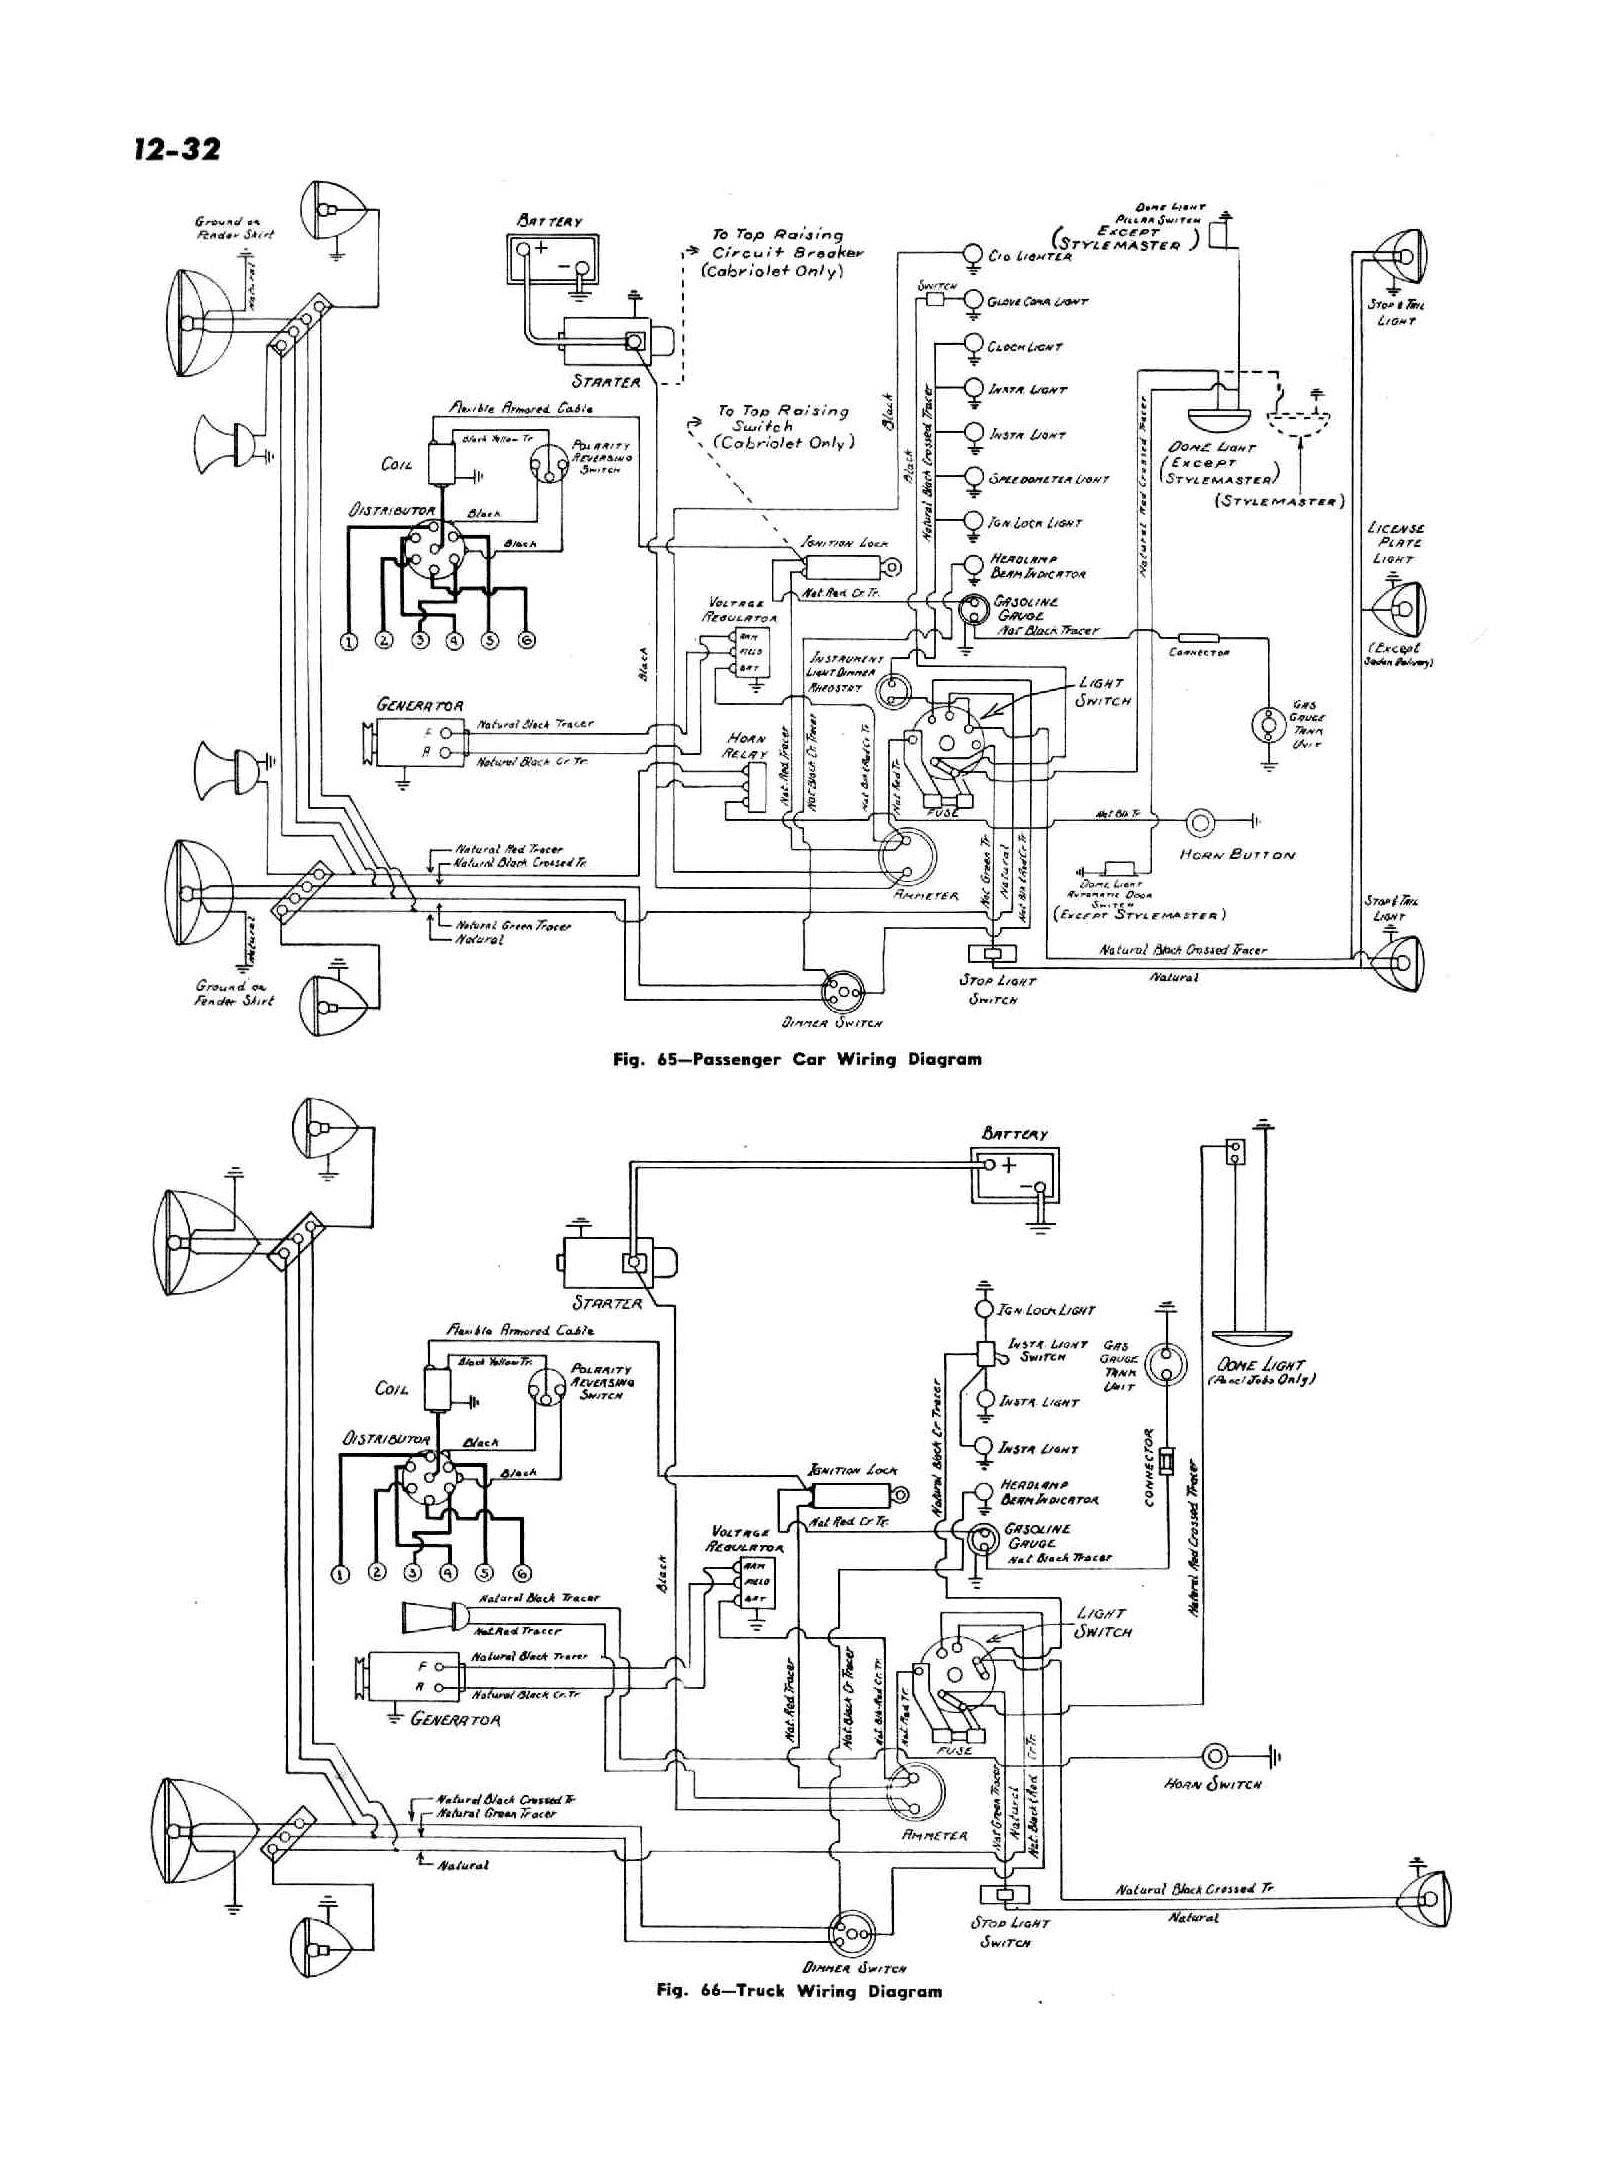 1970 Chevy Nova Wiring Diagram Wiring Library